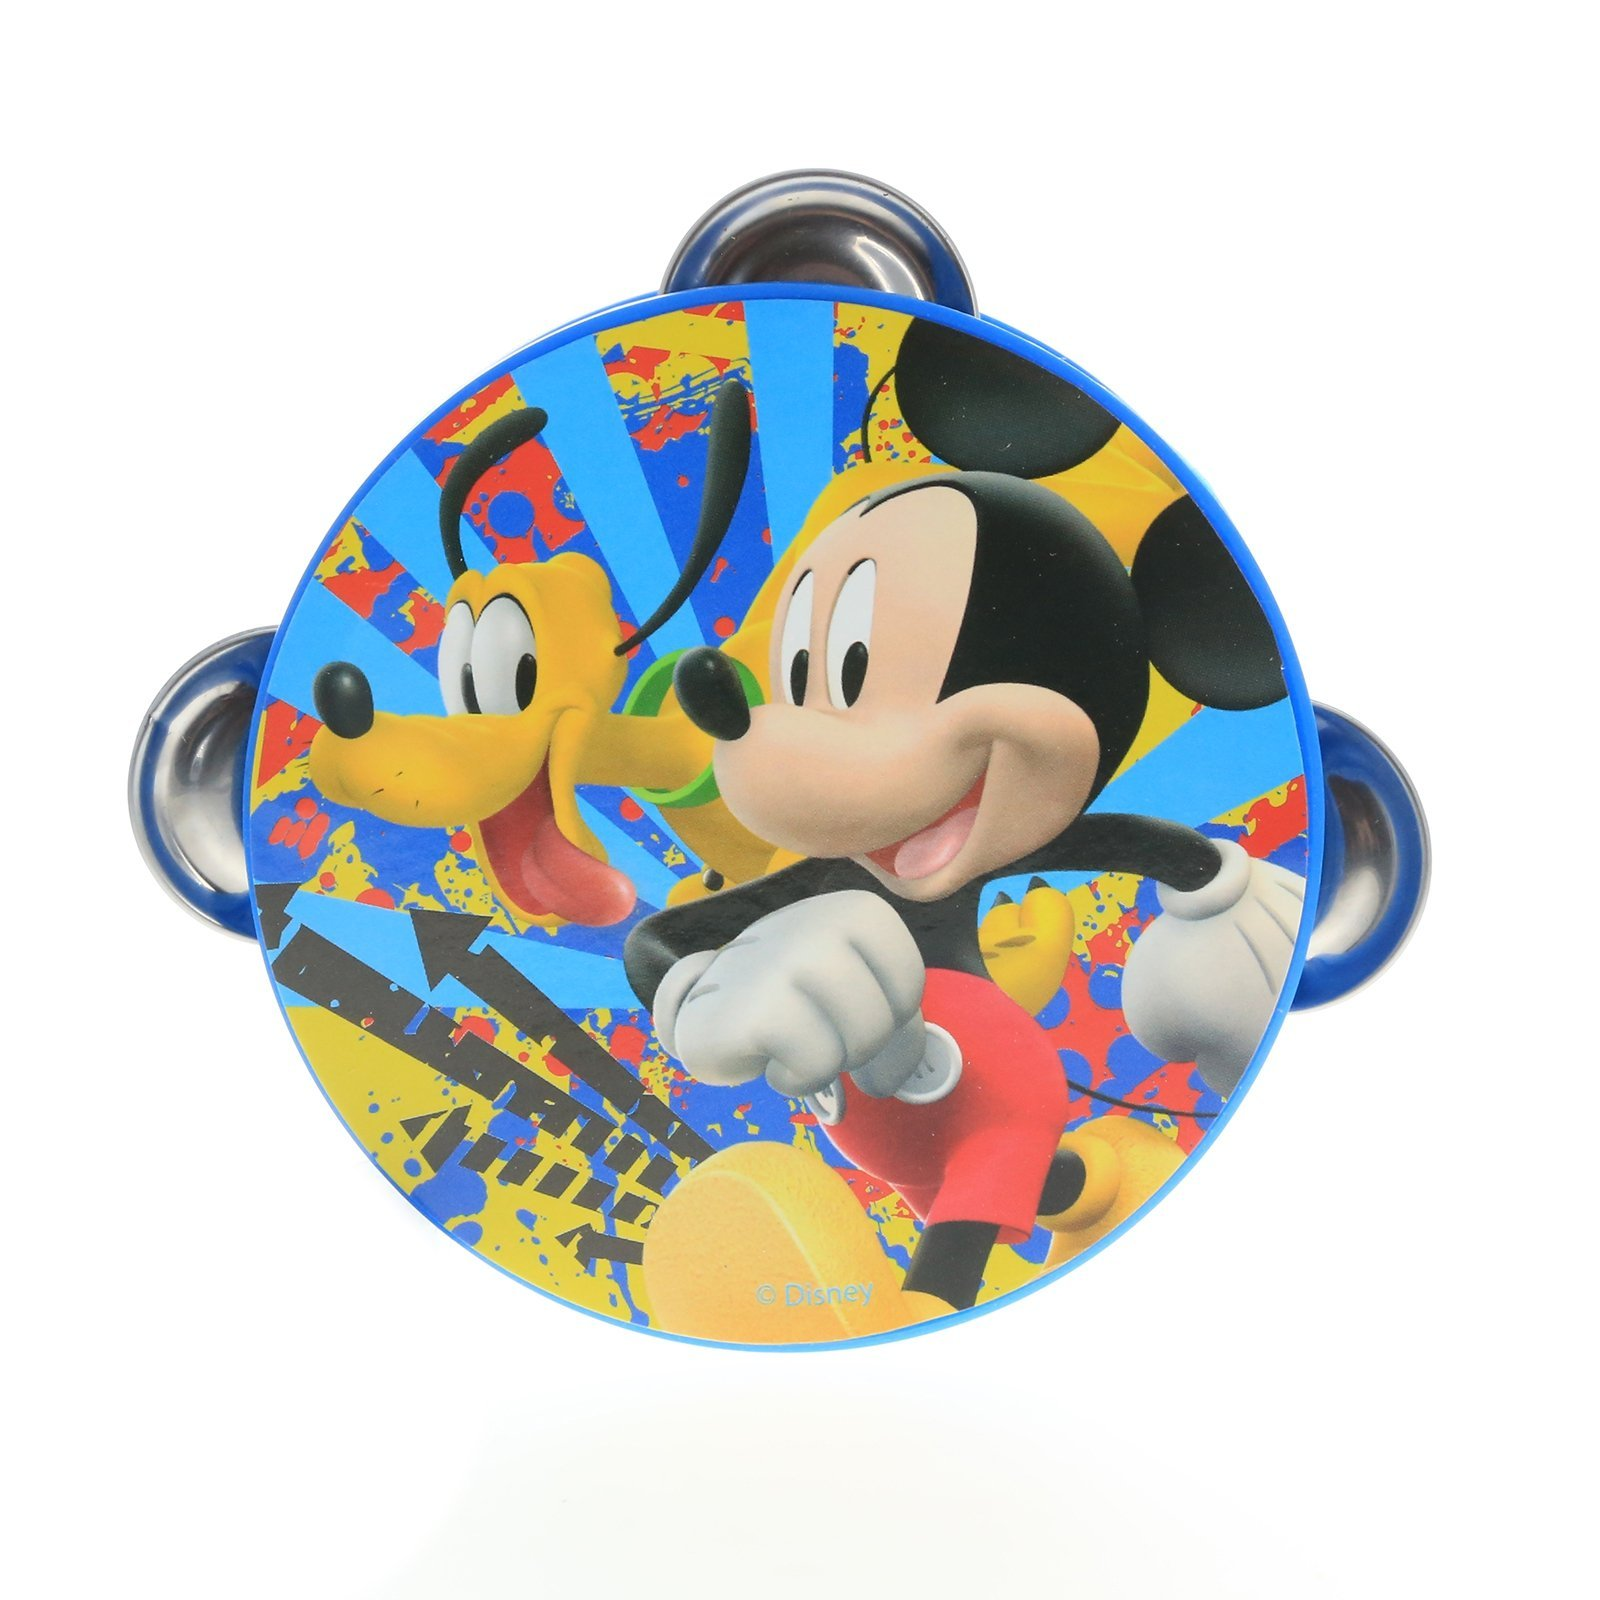 Disney Mickey Mouse Kids Tambourine Educational Musical Instrument Toy Gift